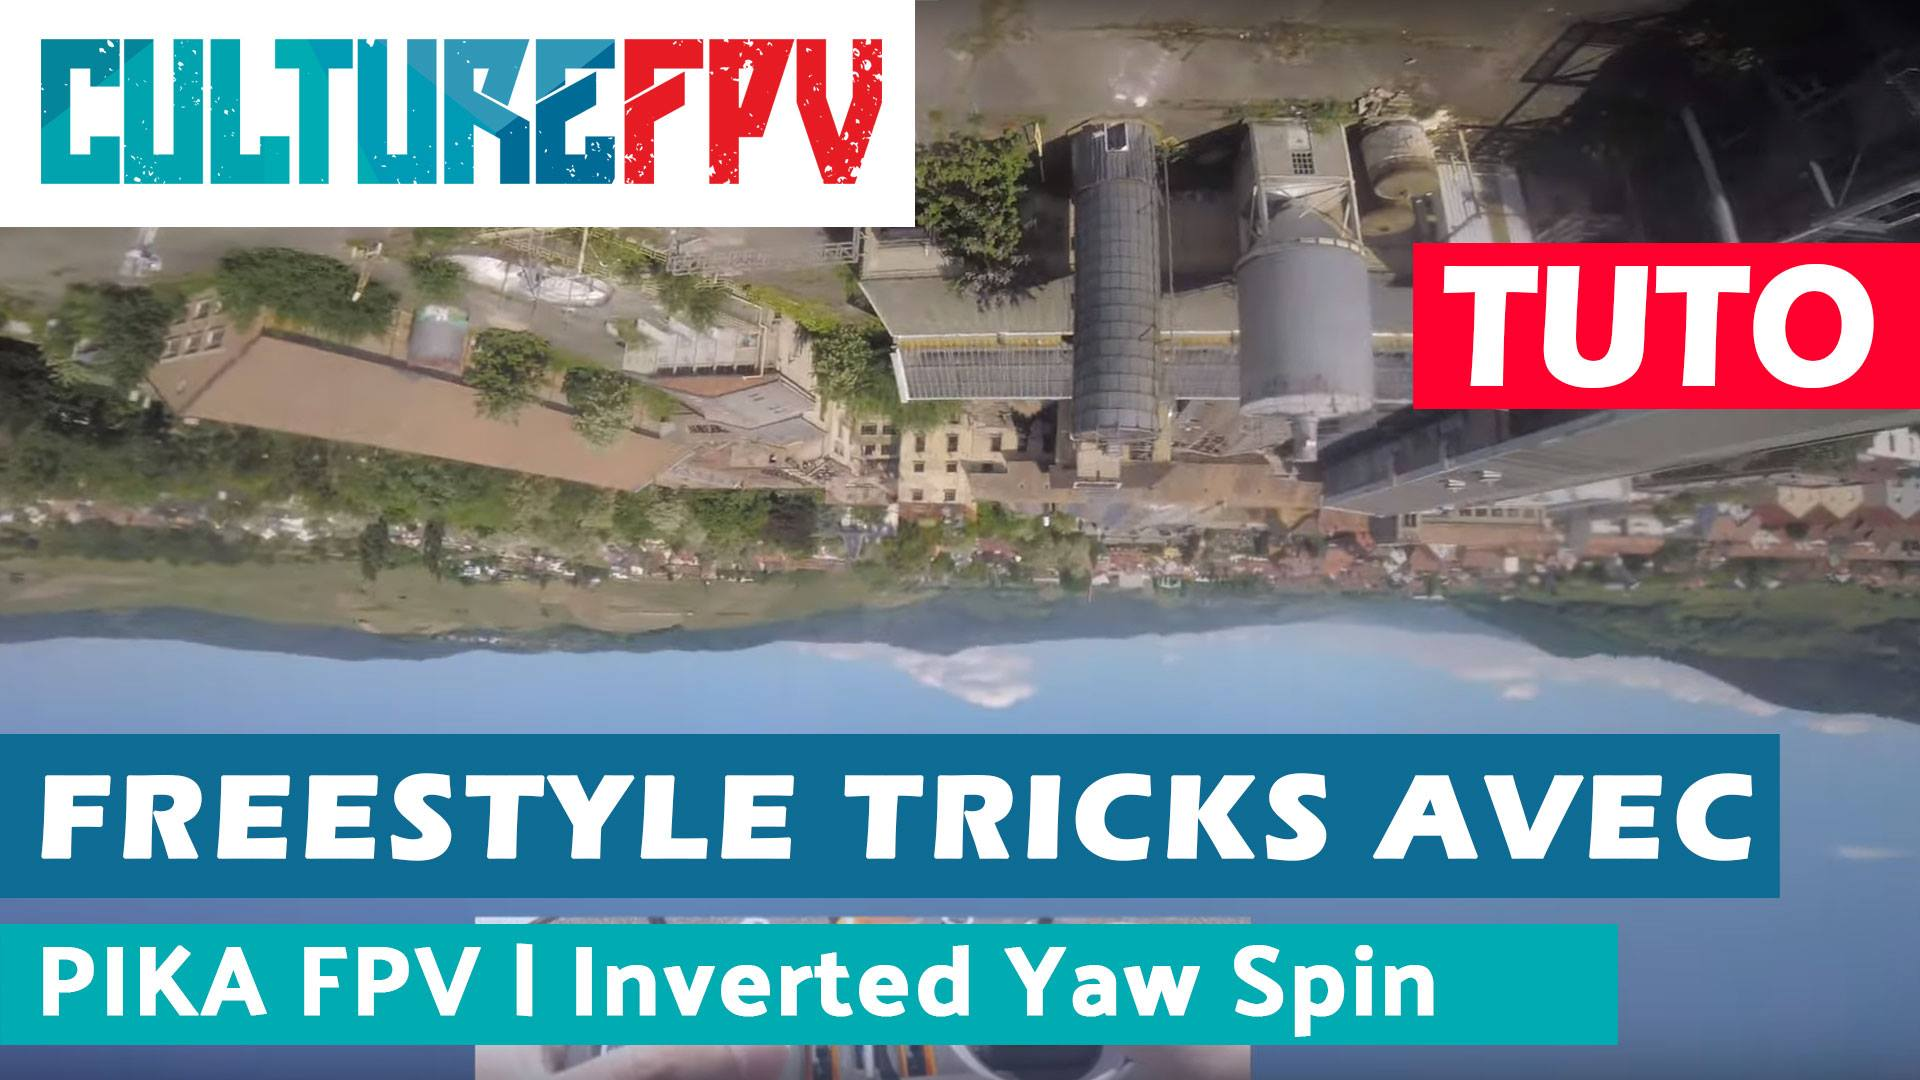 inverted Yaw Spin